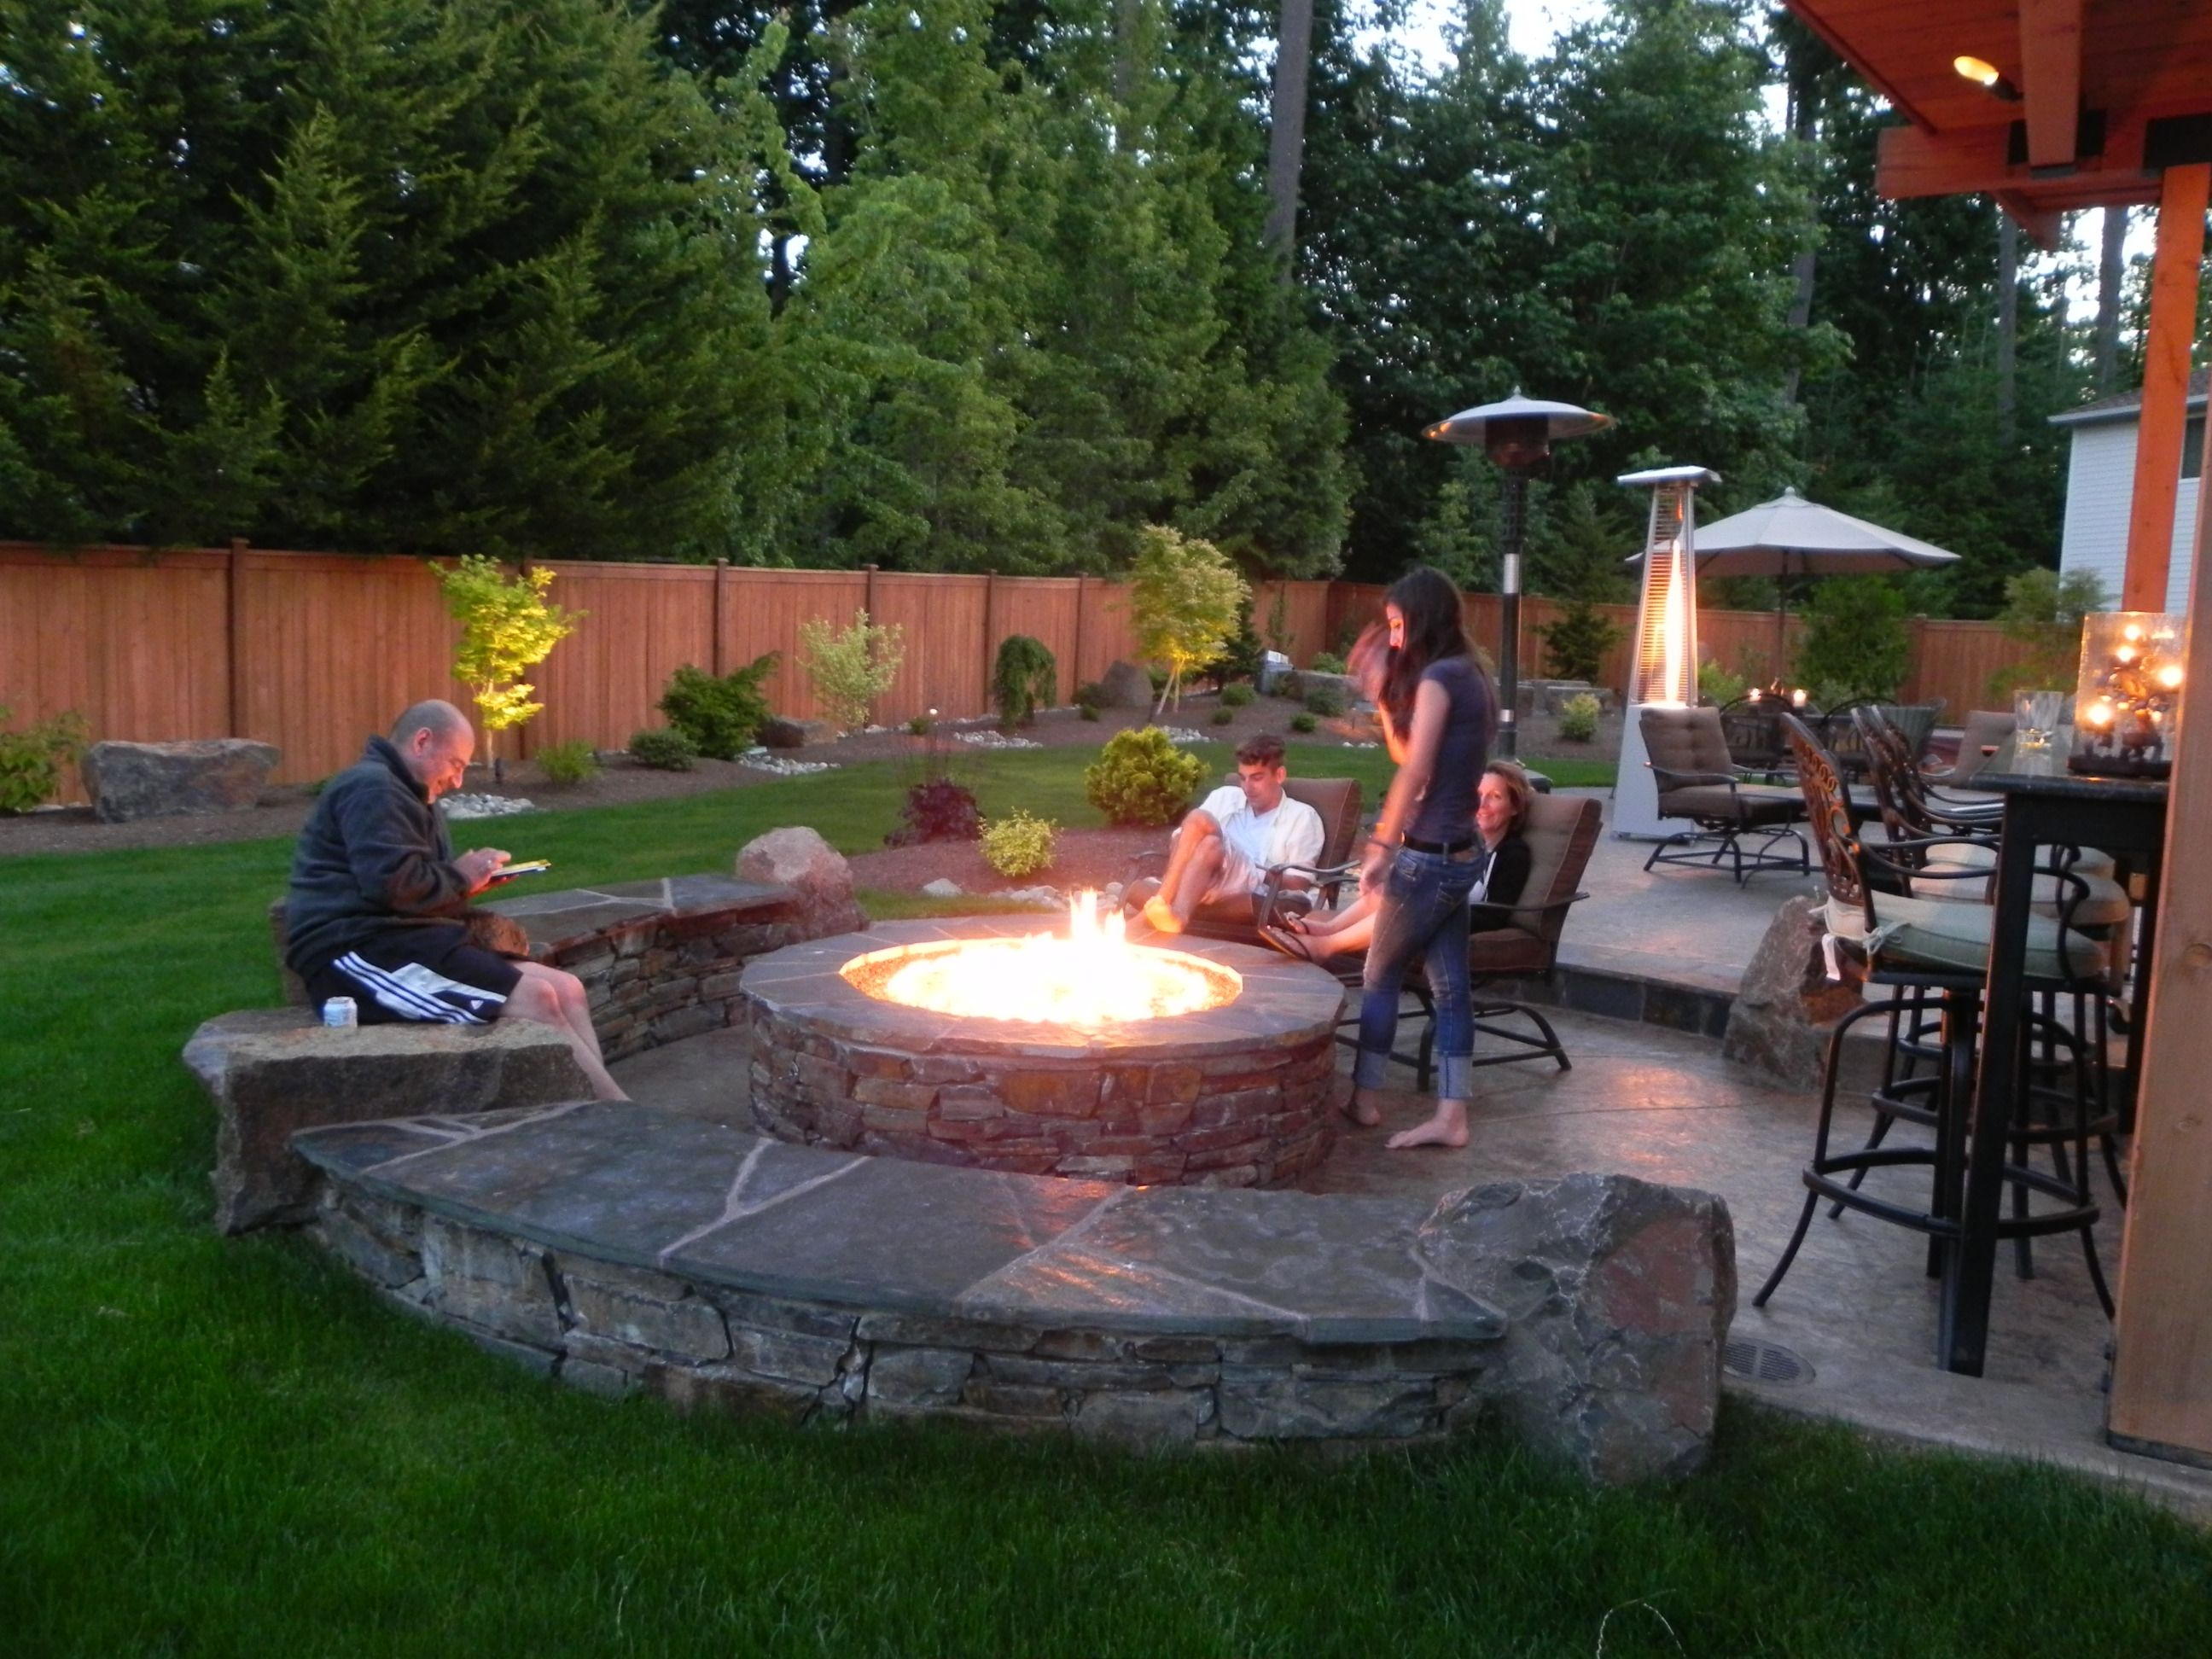 Fire Pit Backyard Ideas outdoor patio with rectangular firepit firepit ideaspatio ideasbackyard Inspiration For Backyard Fire Pit Designs